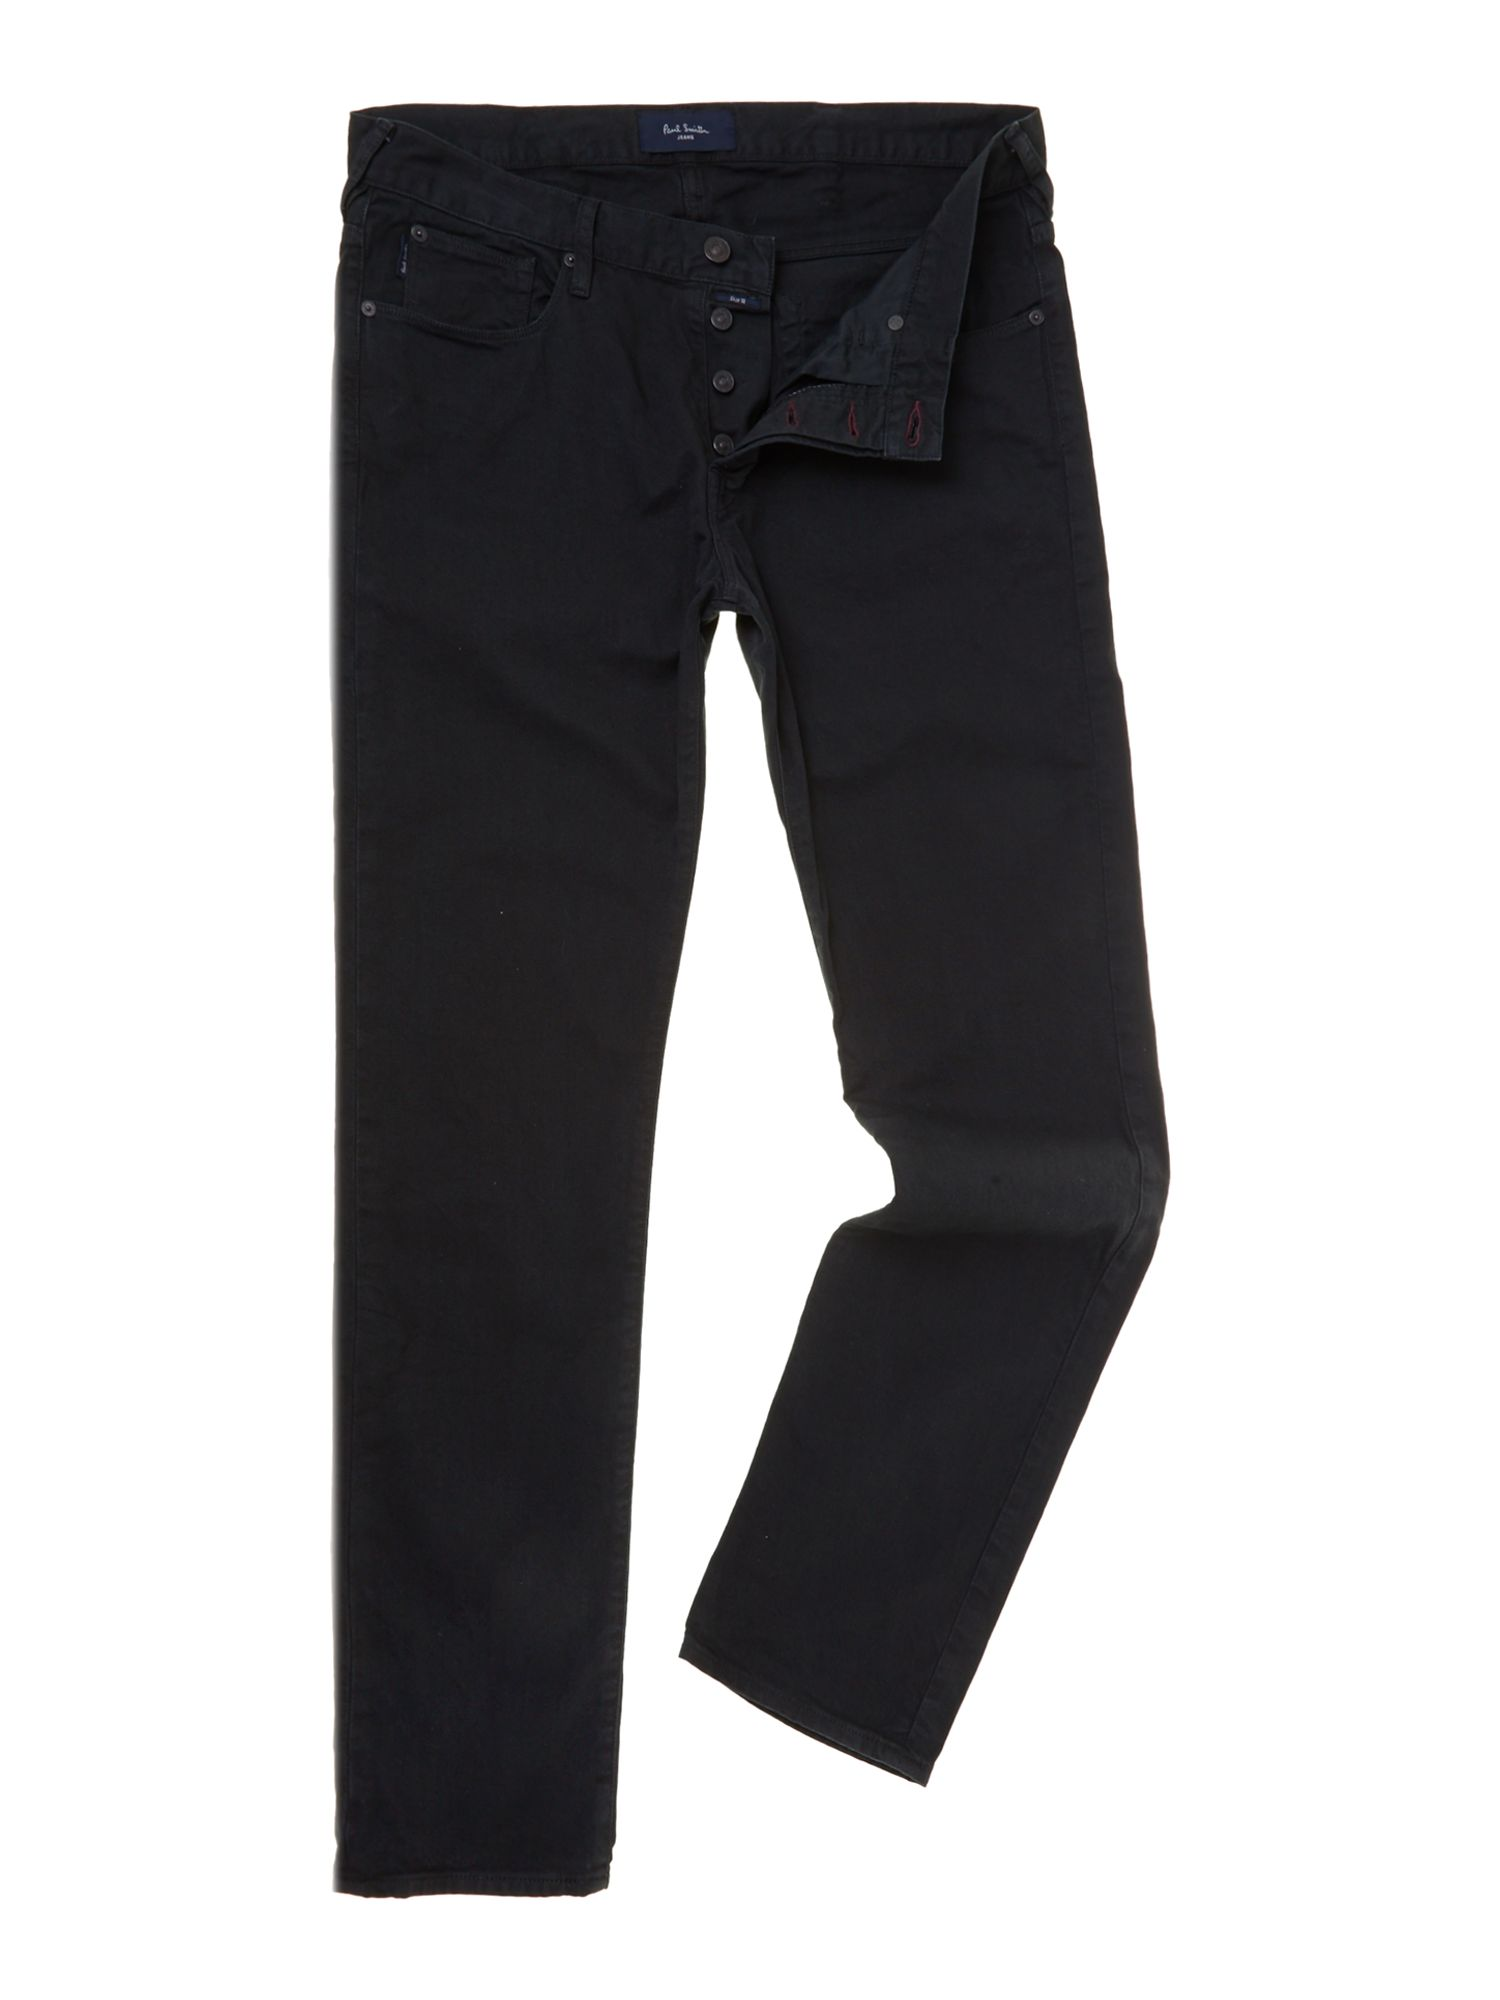 5 pocket twill trousers